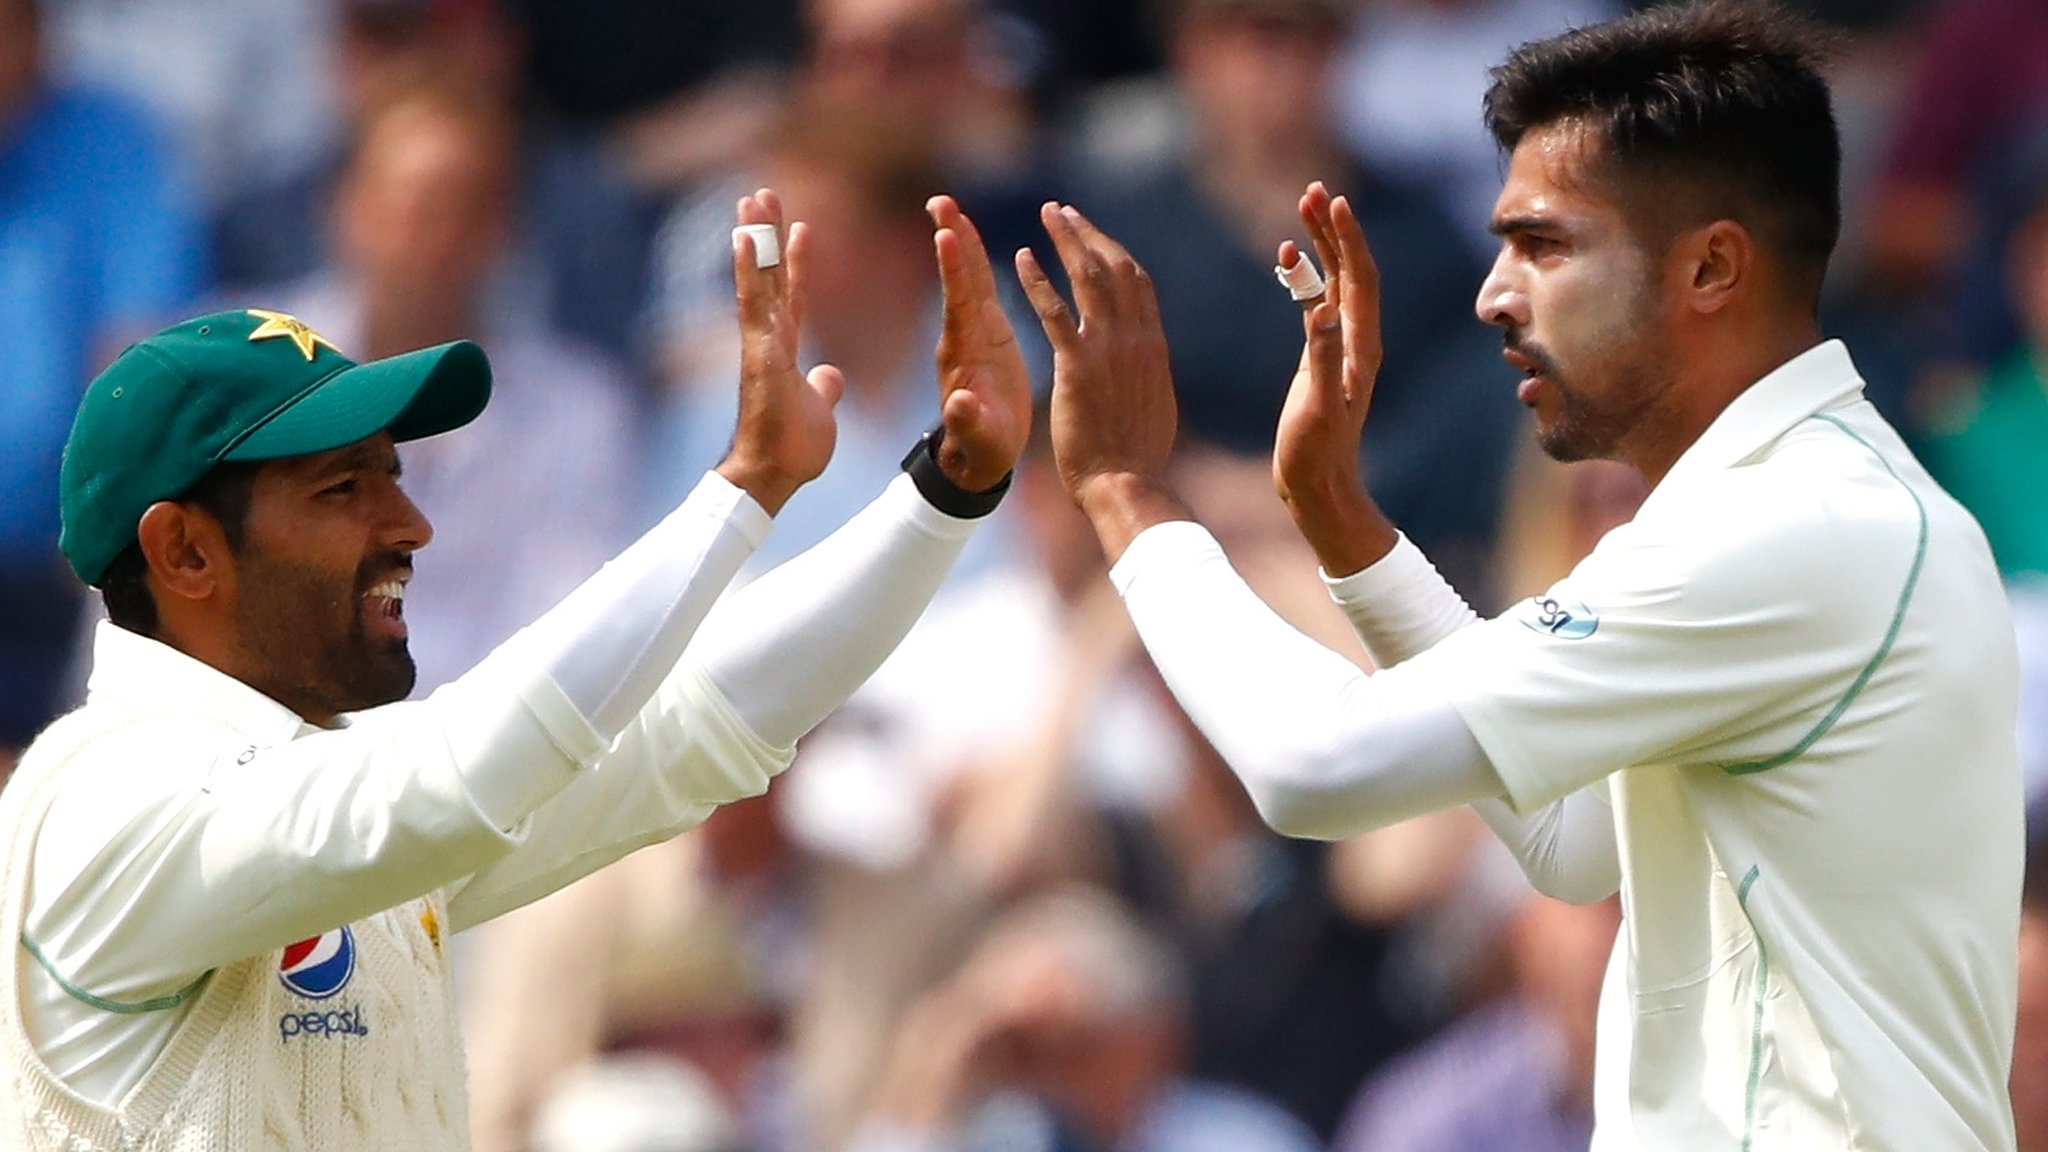 England v Pakistan: Tourists told not to wear smart watches by anti-corruption officials